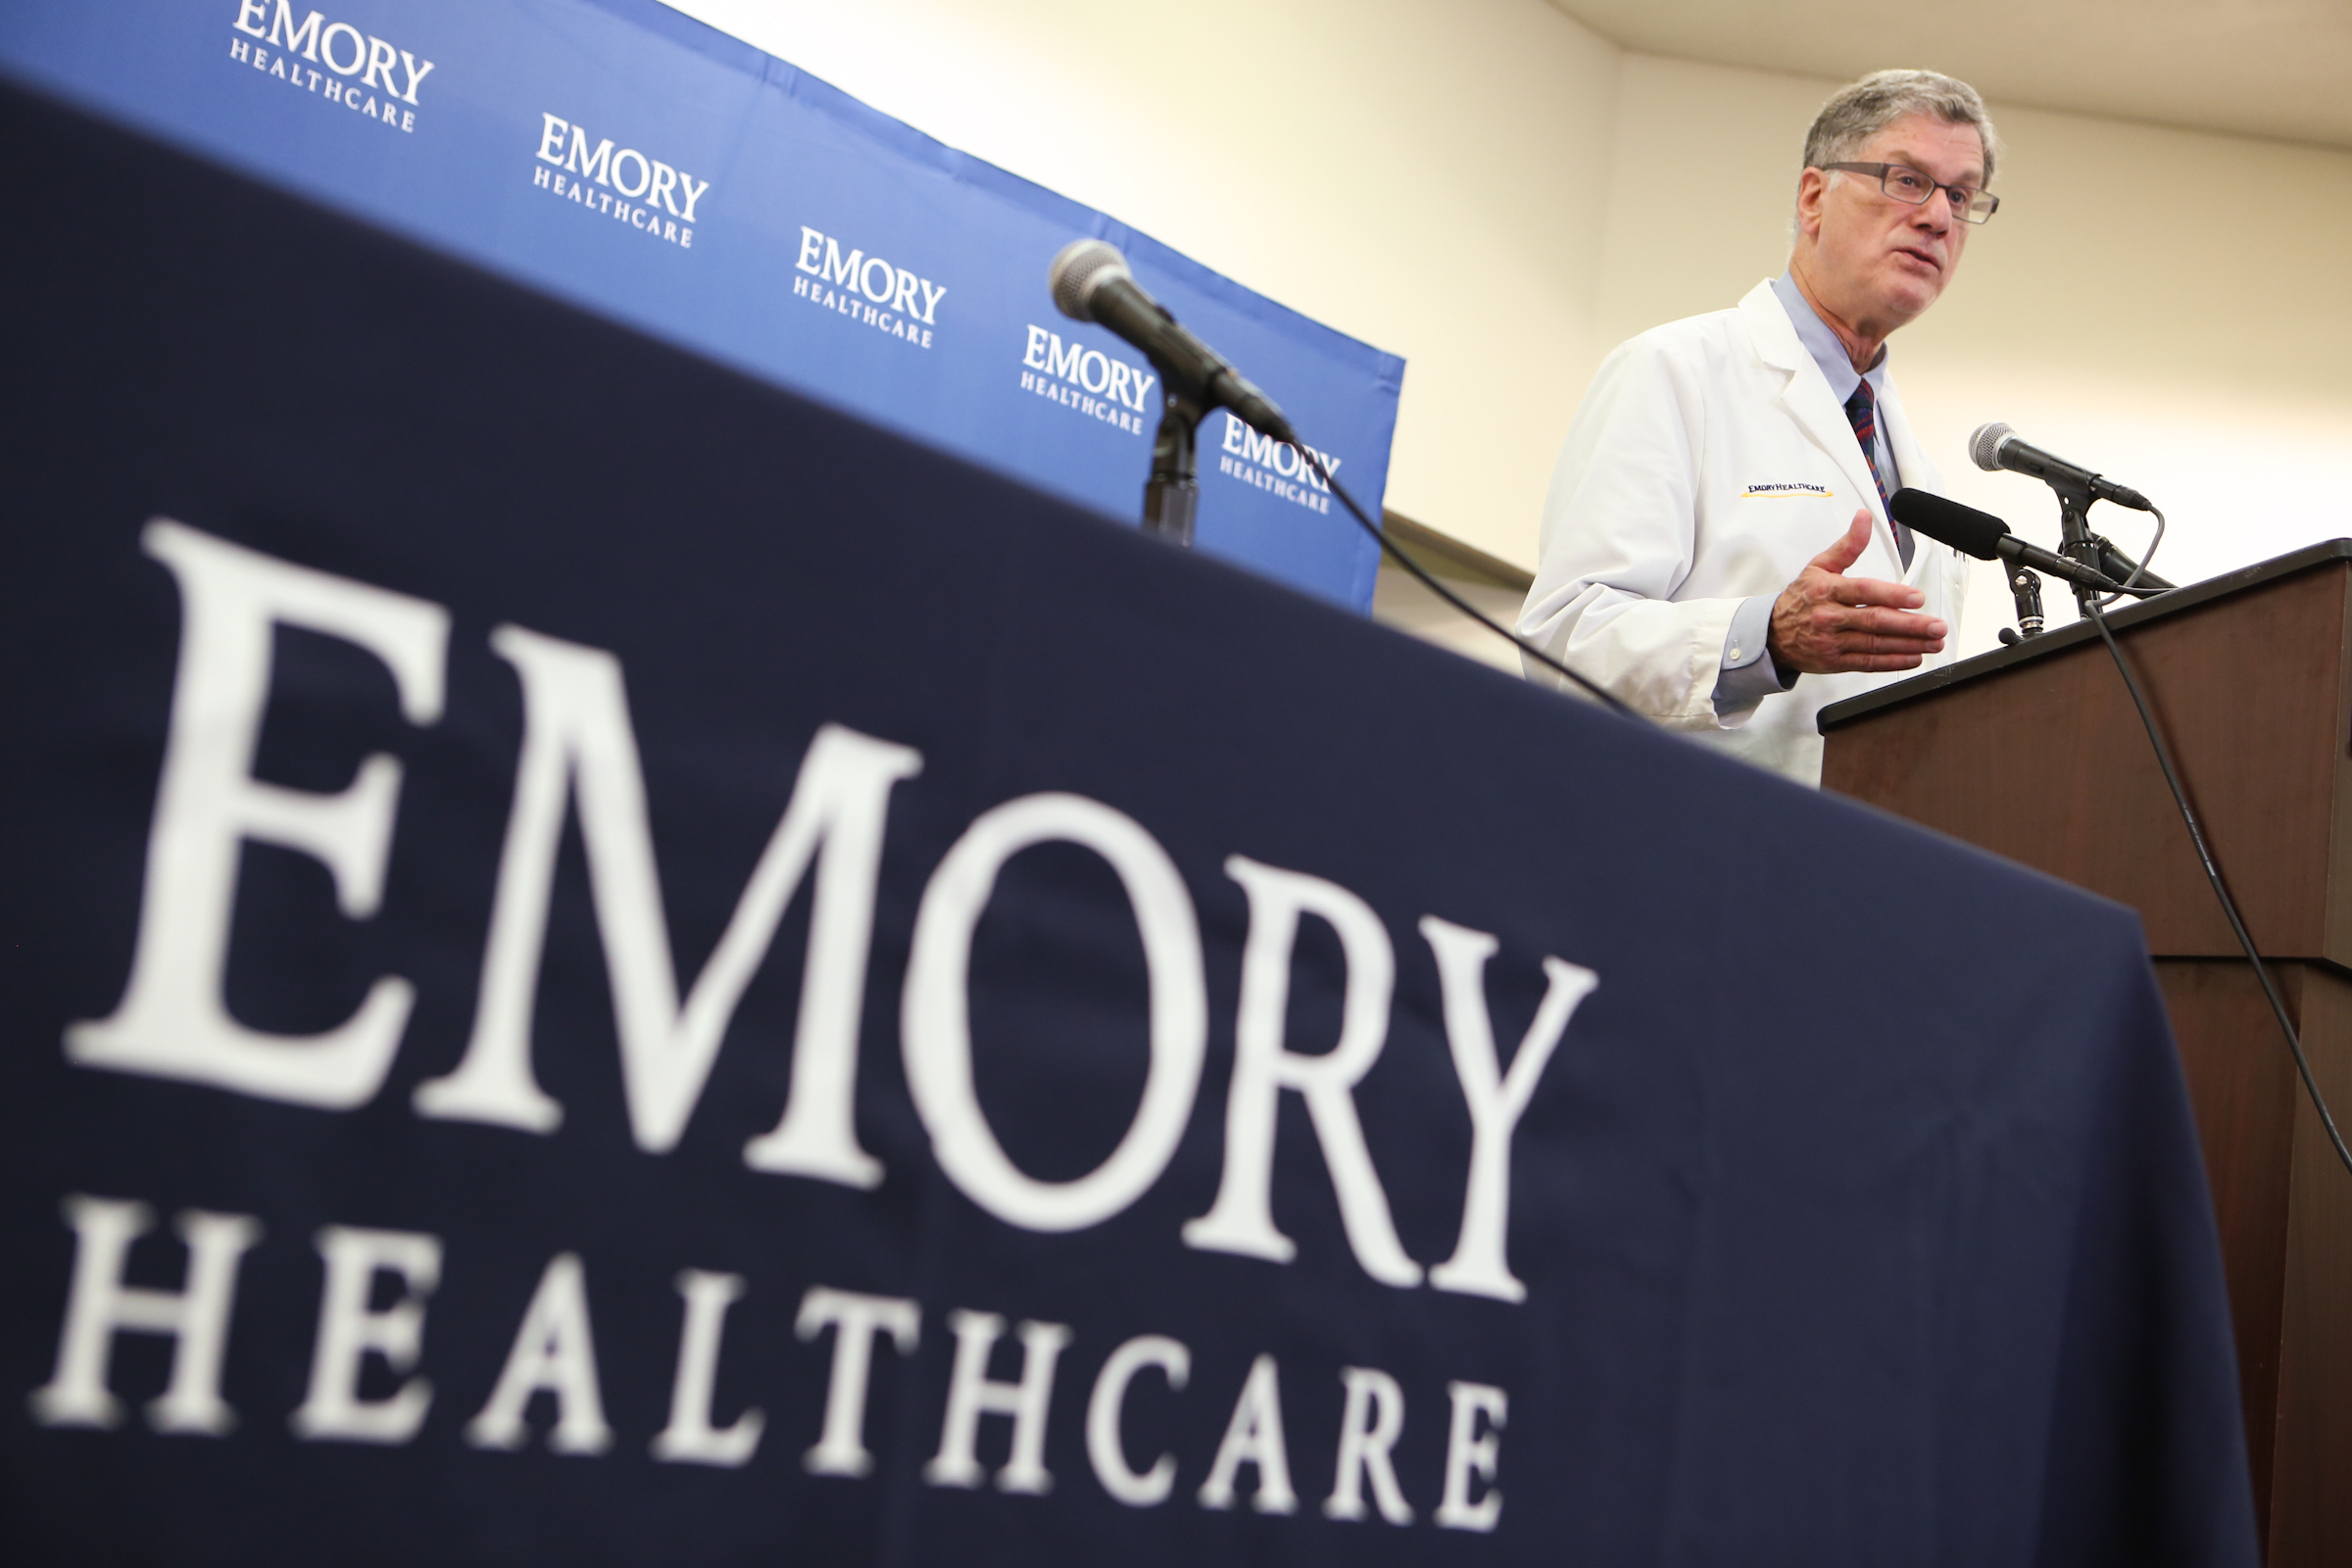 Dr. Bruce Ribner an epidemiologist and professor in the School of Medicine's Infectious Diseases Division, confirms that Emory University Hospital will be receiving and treating two American patients diagnosed with Ebola virus during a press conference at Emory University Hospital on Aug. 1, 2014 in Atlanta.